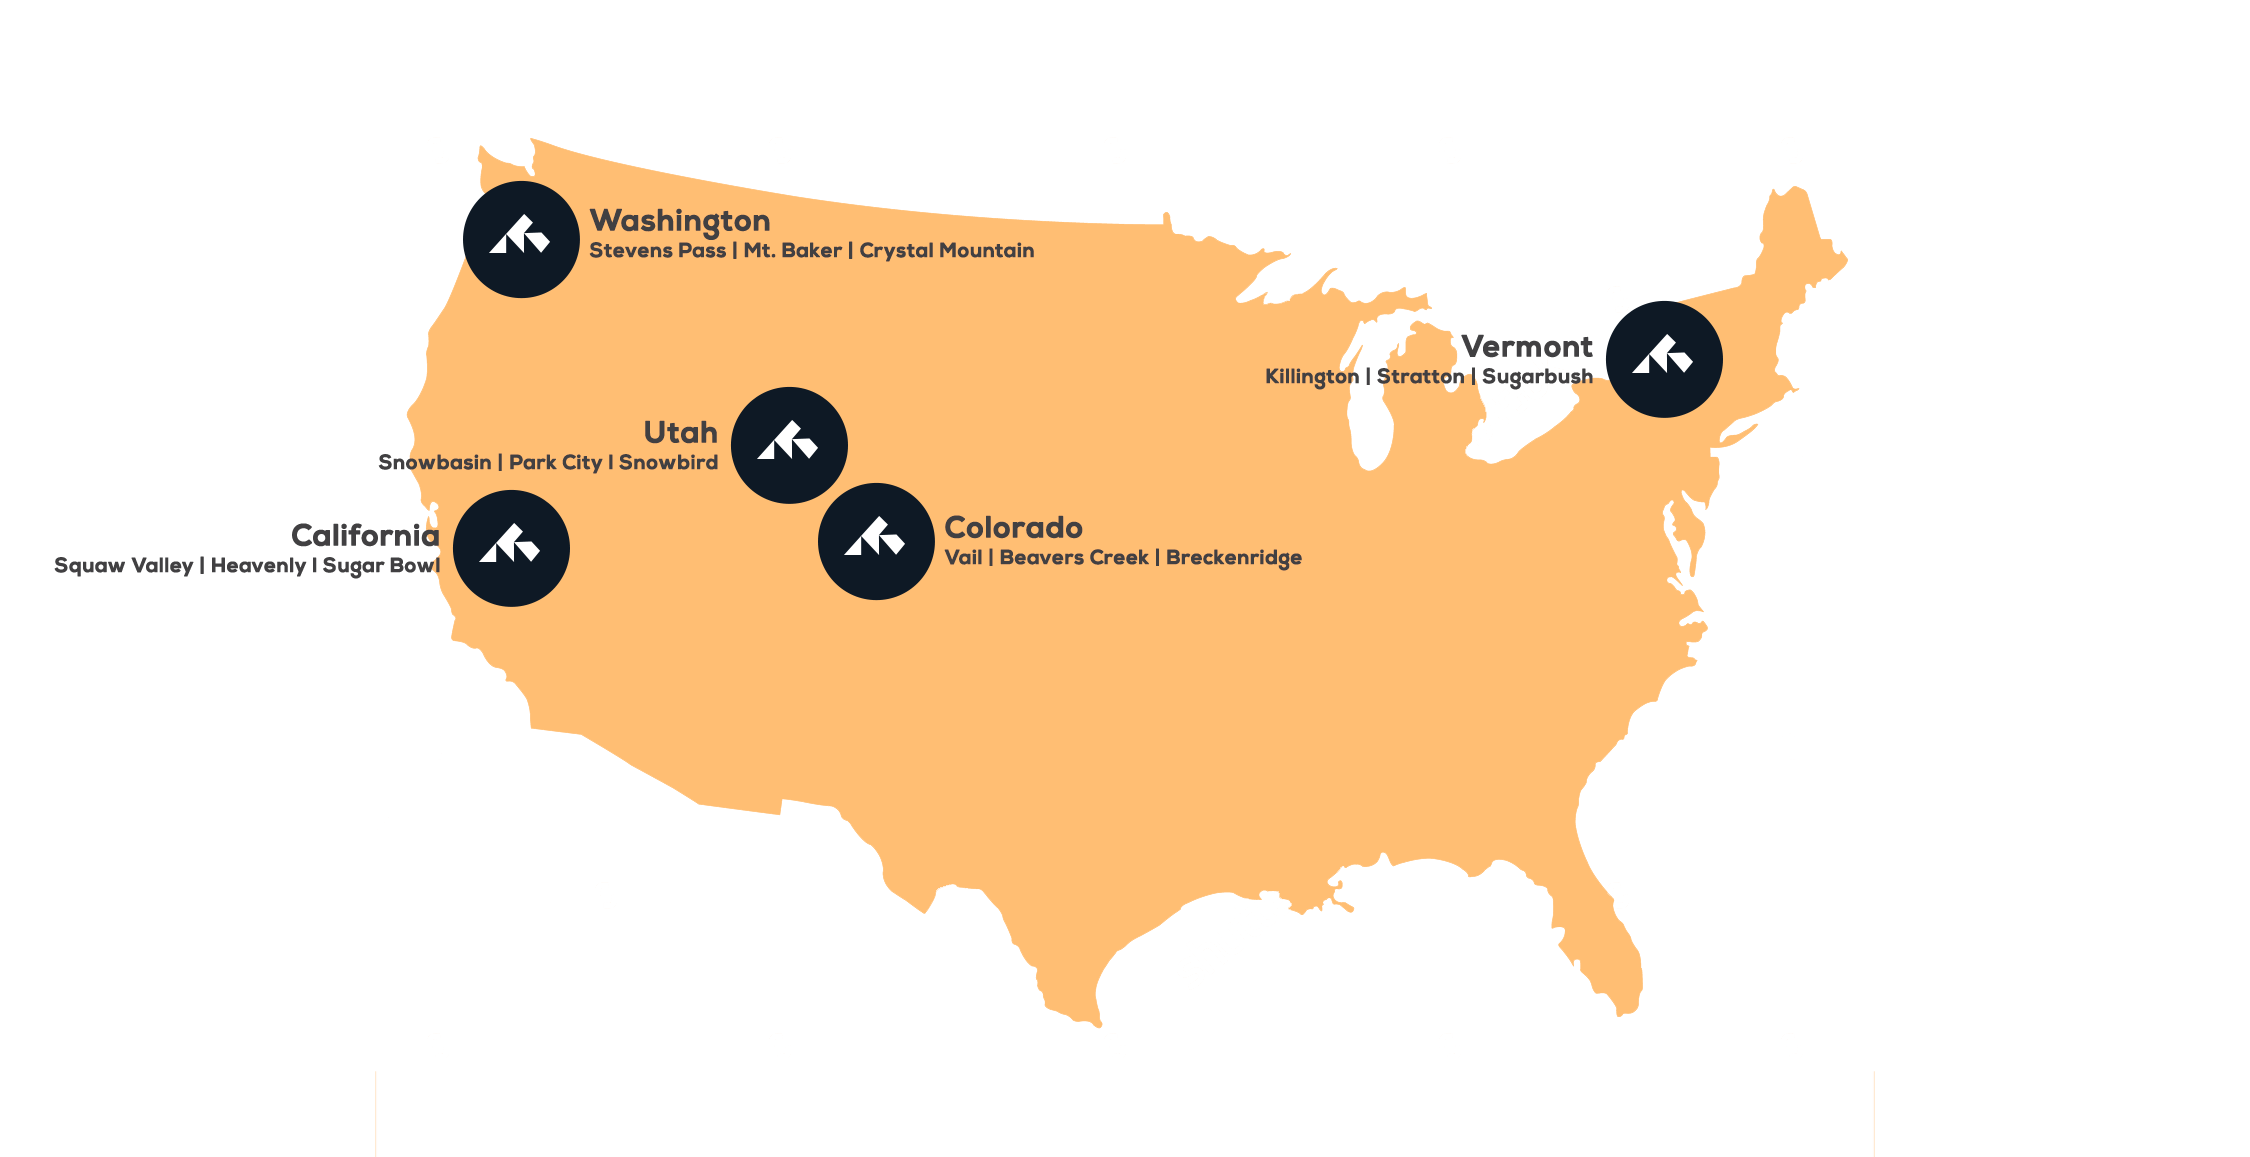 Map of destinations in the USA